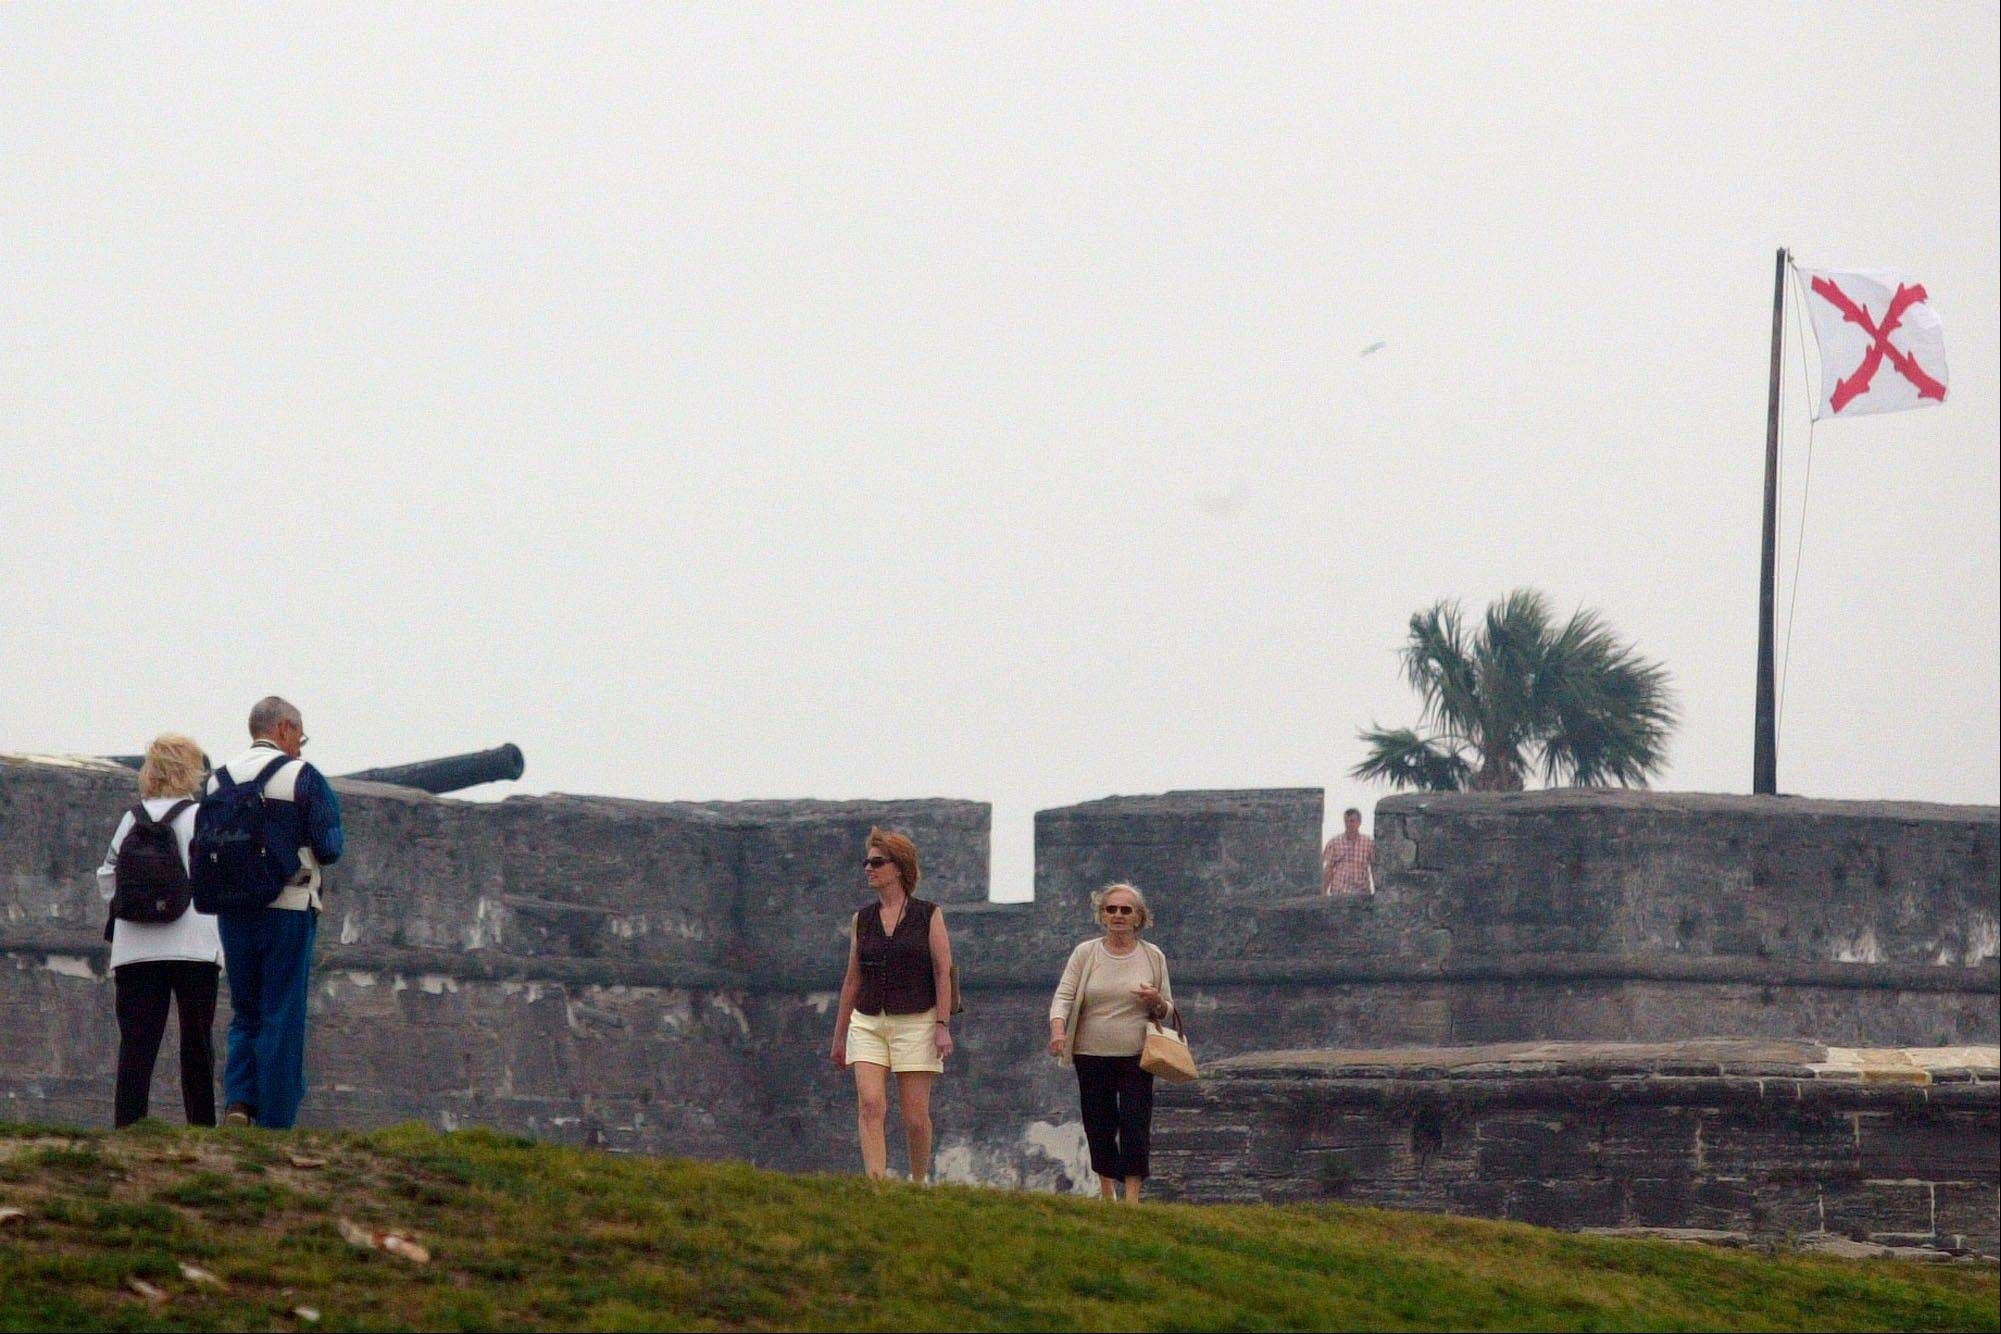 Visitors tour the Castillo de San Marcos in St. Augustine, Fla. The Spanish built the Castillo de San Marcos, an imposing fort constructed of the stone coquina between 1672 and 1696.